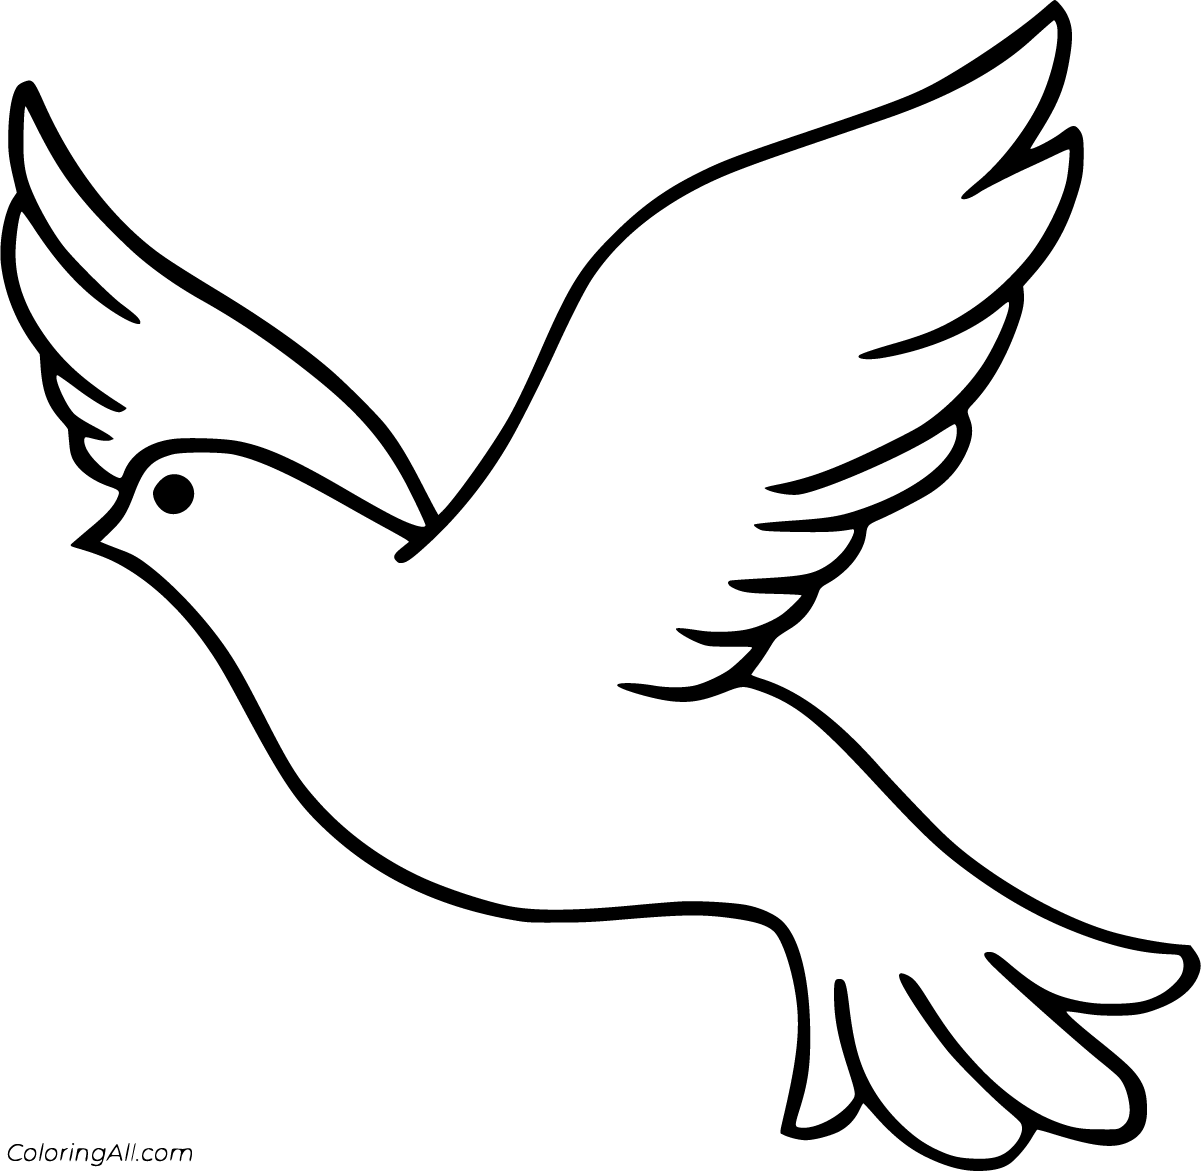 28 Free Printable Dove Coloring Pages In Vector Format Easy To Print From Any Device And Automatically Fit Any Bird Coloring Pages Coloring Pages Bird Outline